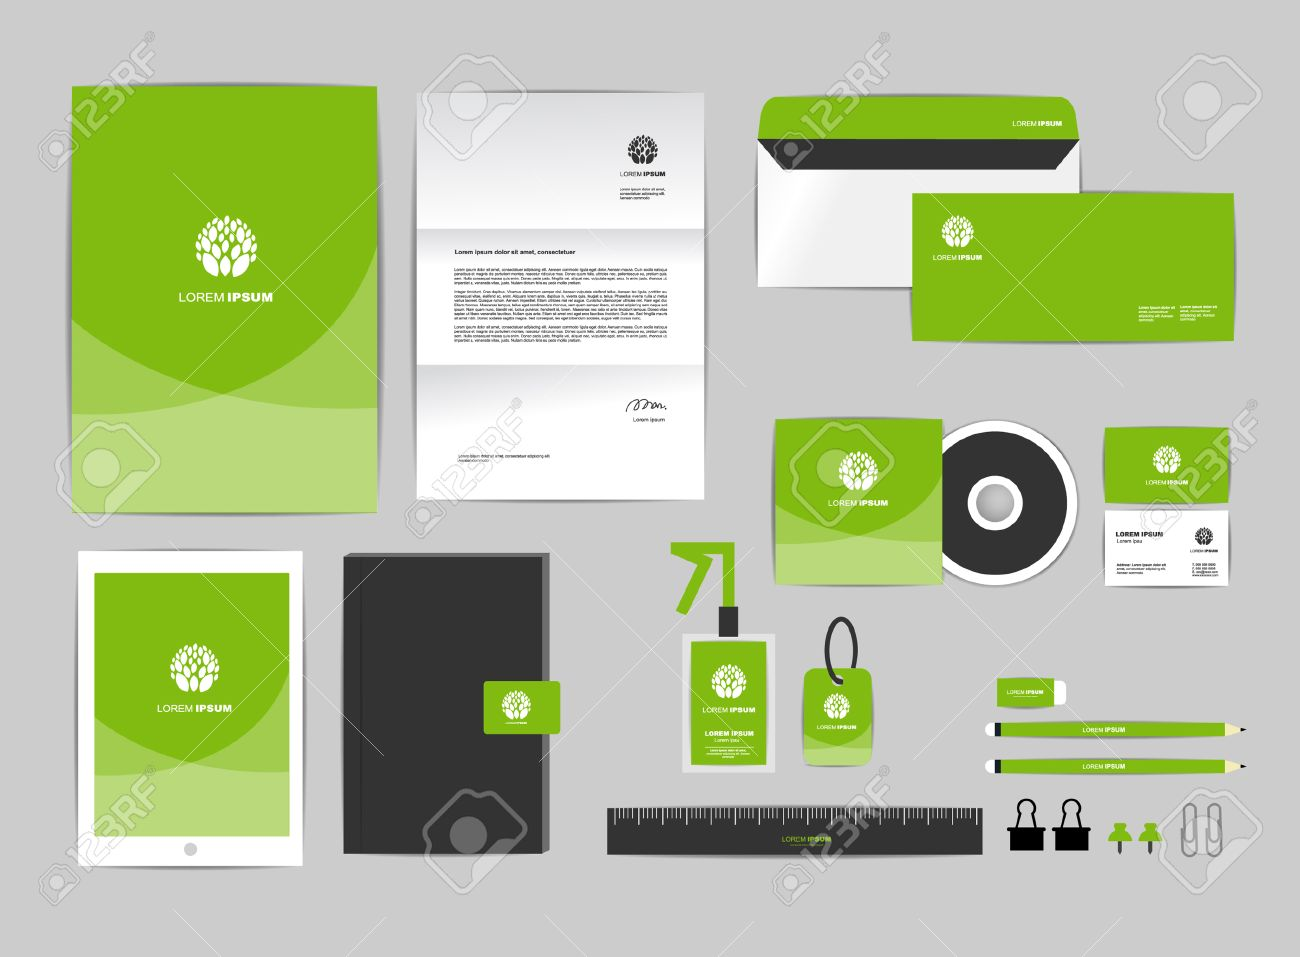 Corporate Identity Template Includes CD Cover, Business Card ...